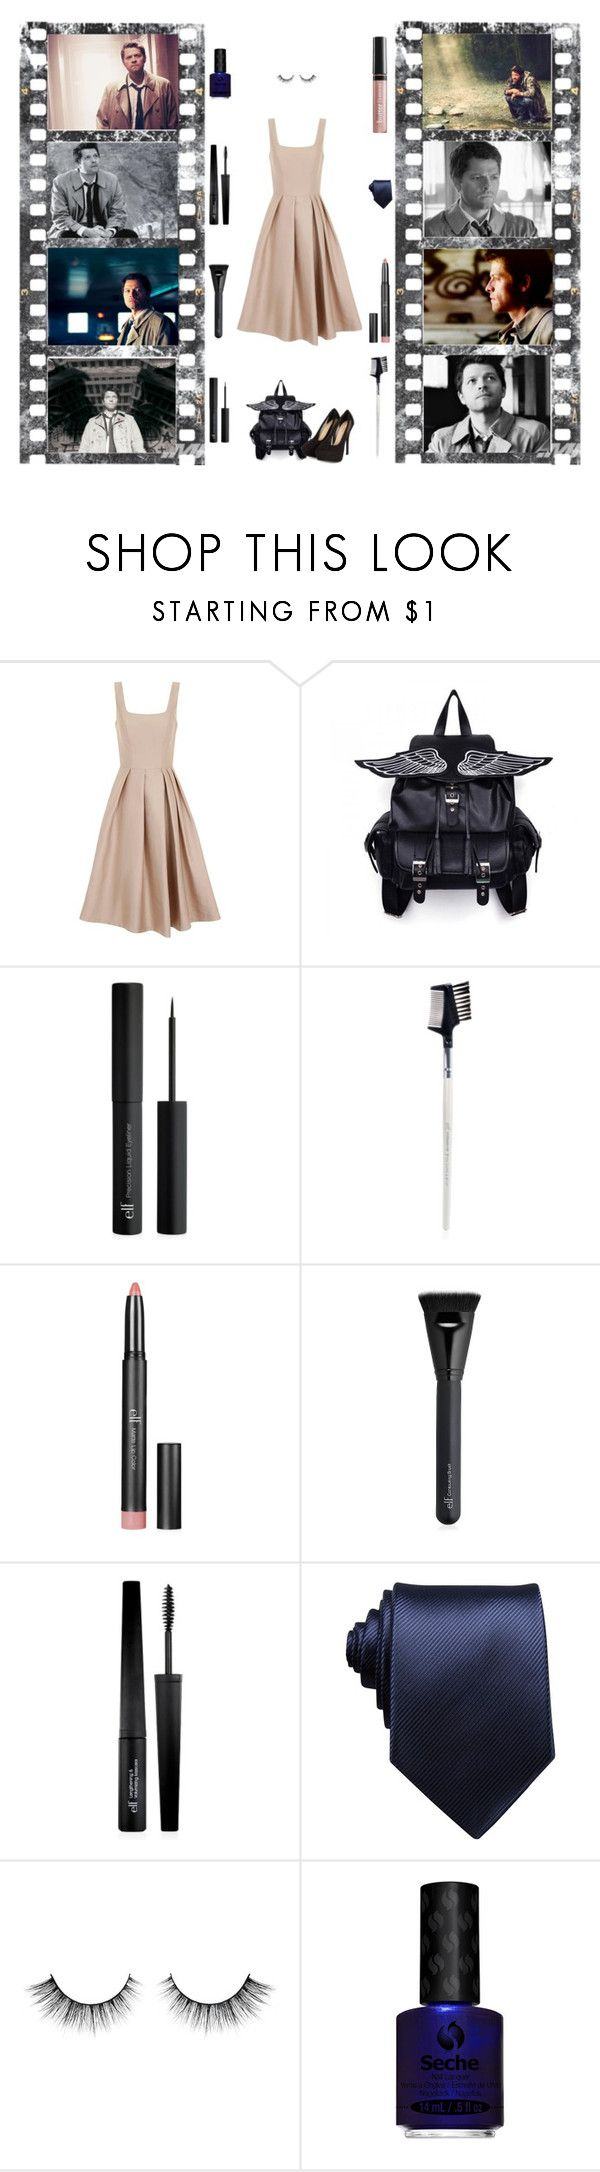 """""""Castiel the Winged"""" by slytherin-archangel ❤ liked on Polyvore featuring Chi Chi, e.l.f., Perry Ellis, Seche and Butter London"""